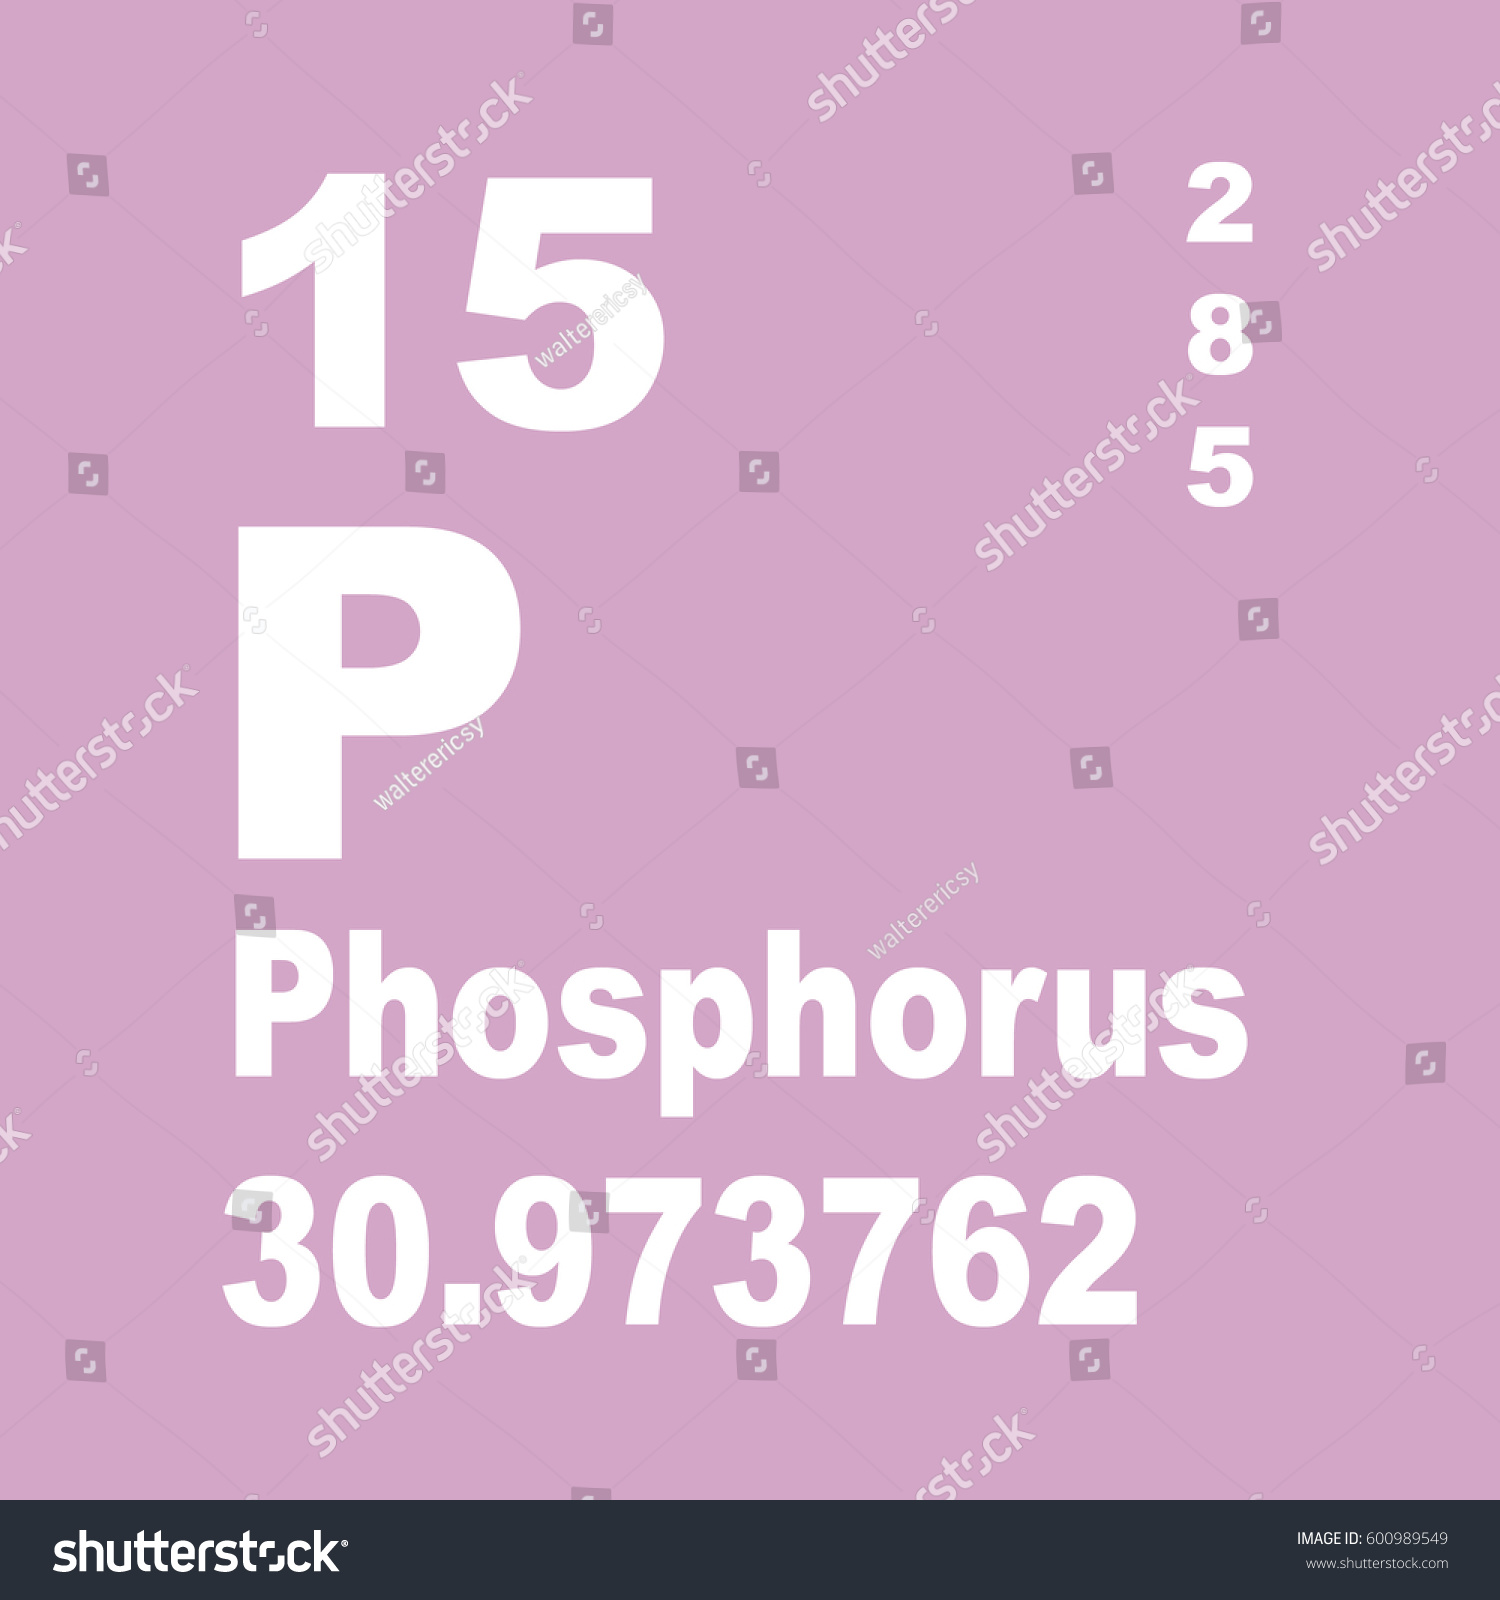 Periodic table phosphorus gallery periodic table images periodic table element phosphorus stock line graph maker phosphorus periodic table elements stock illustration 600989549 stock gamestrikefo Image collections